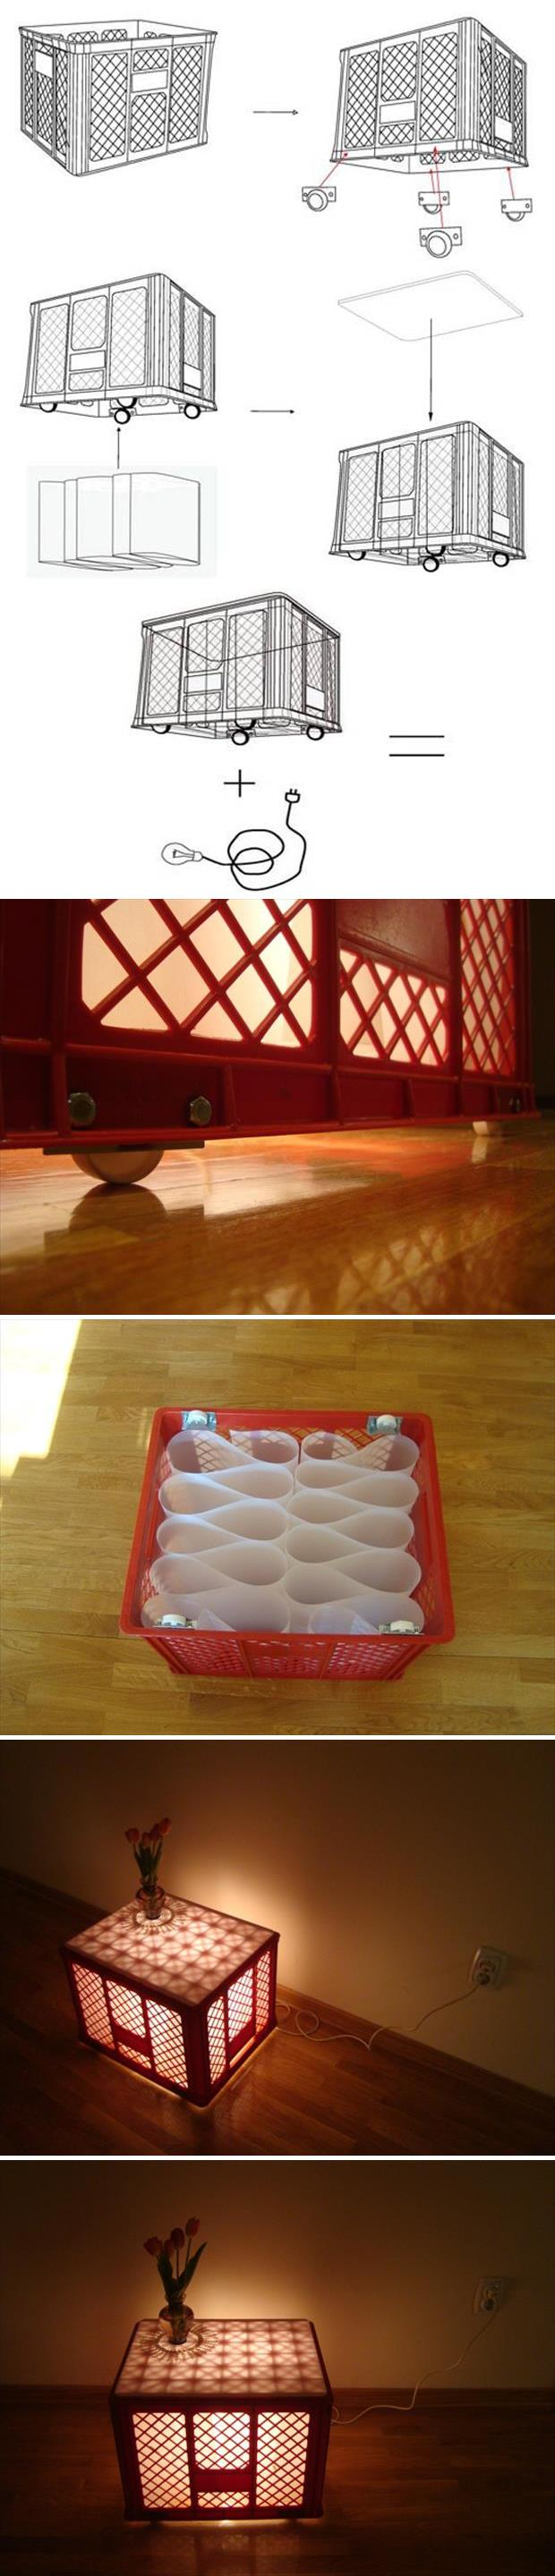 lamp table craft idea